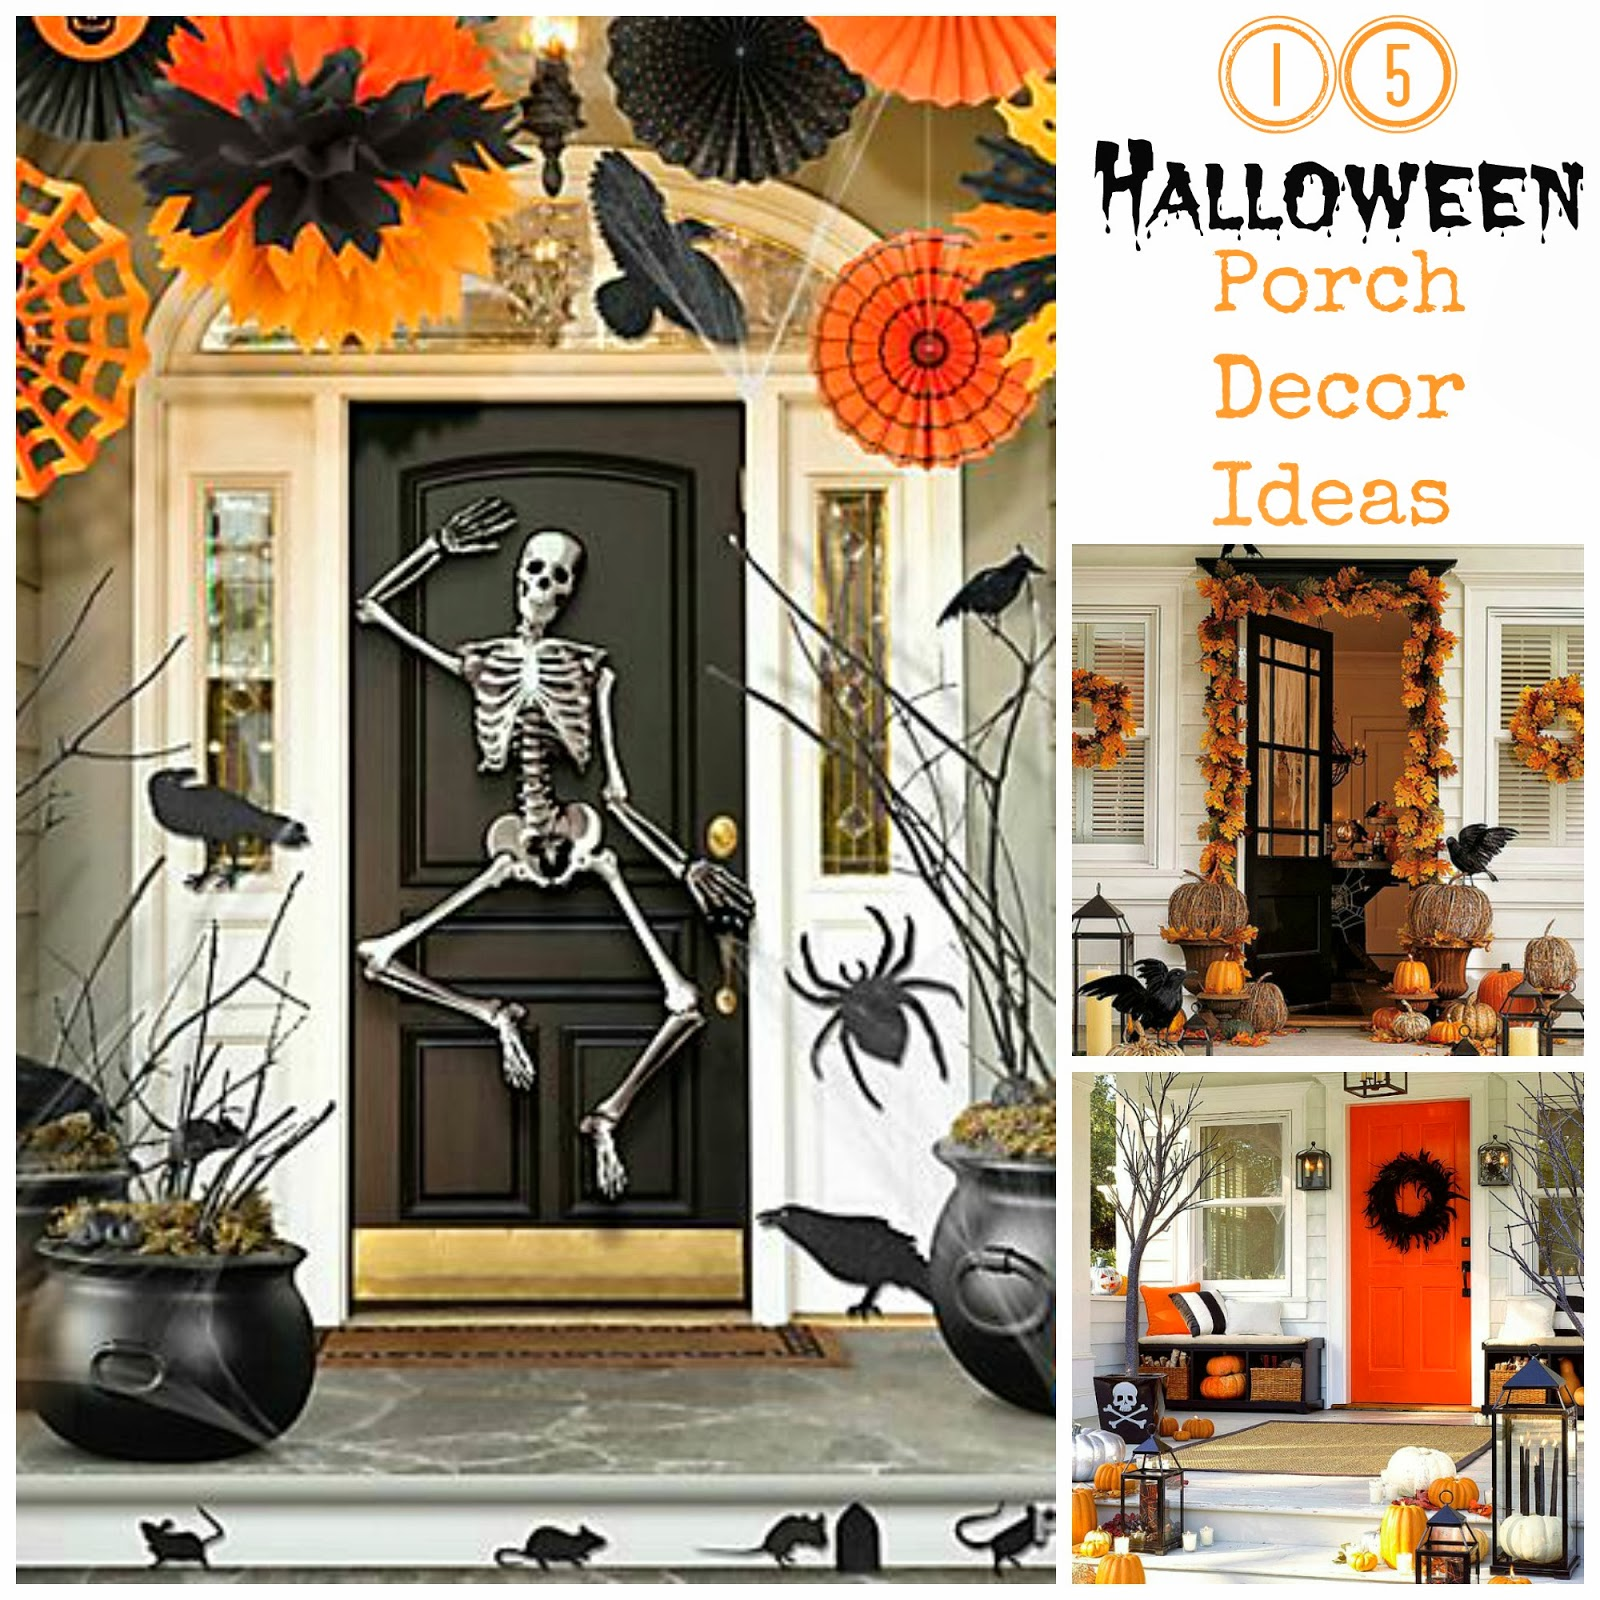 15 halloween porch decor ideas i dig pinterest - Decorating Outside For Halloween